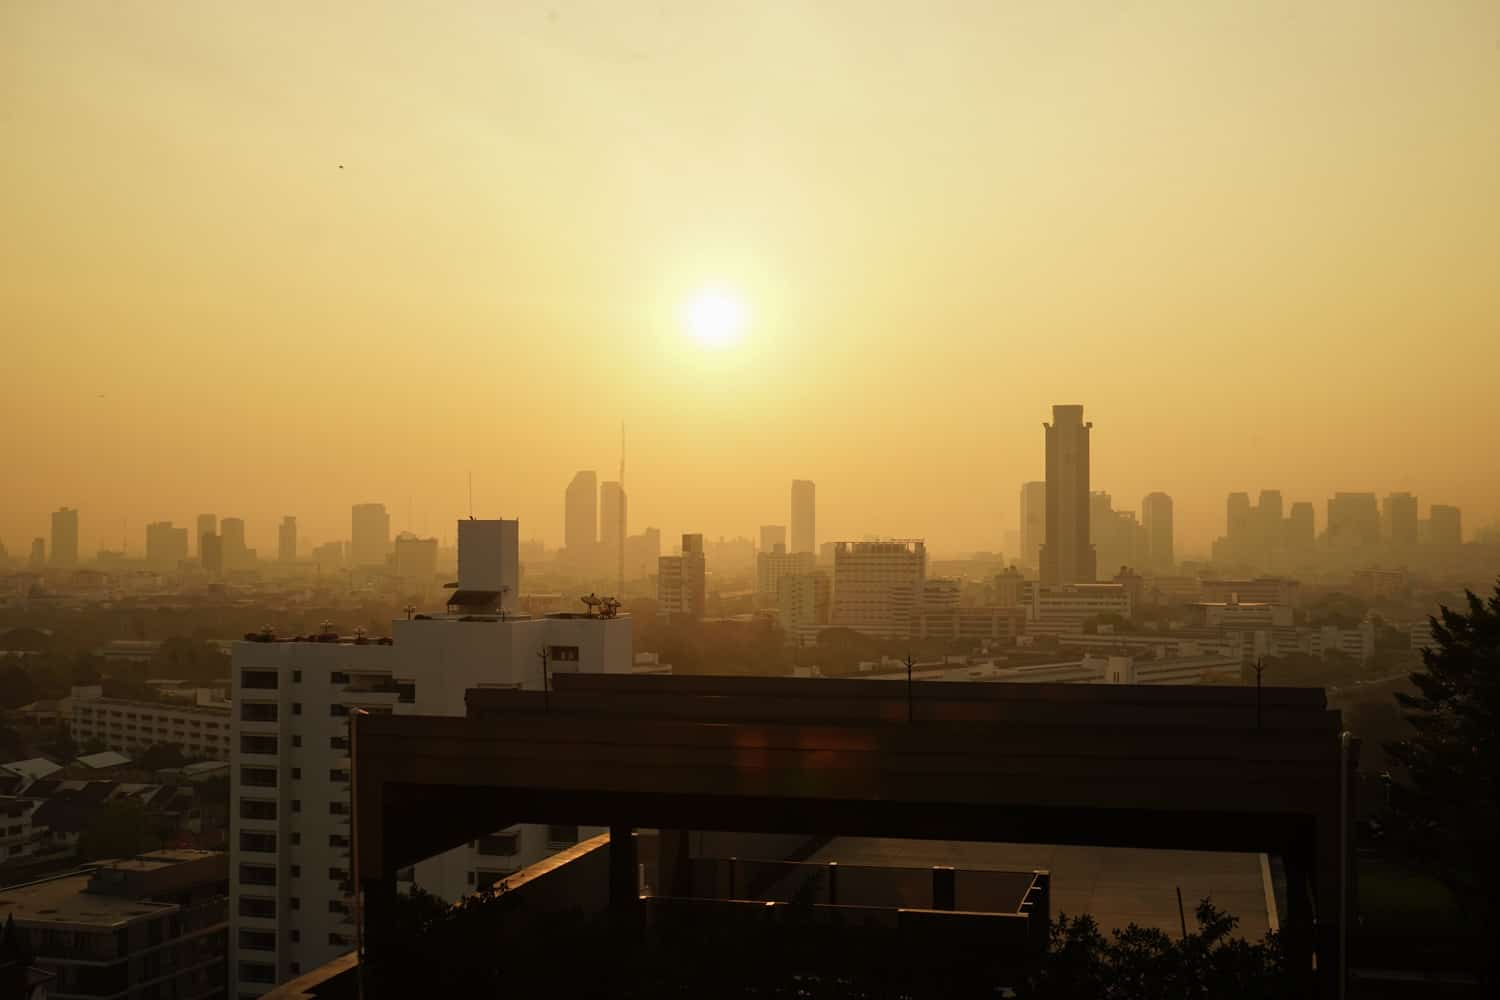 Bangkok haze at sunrise